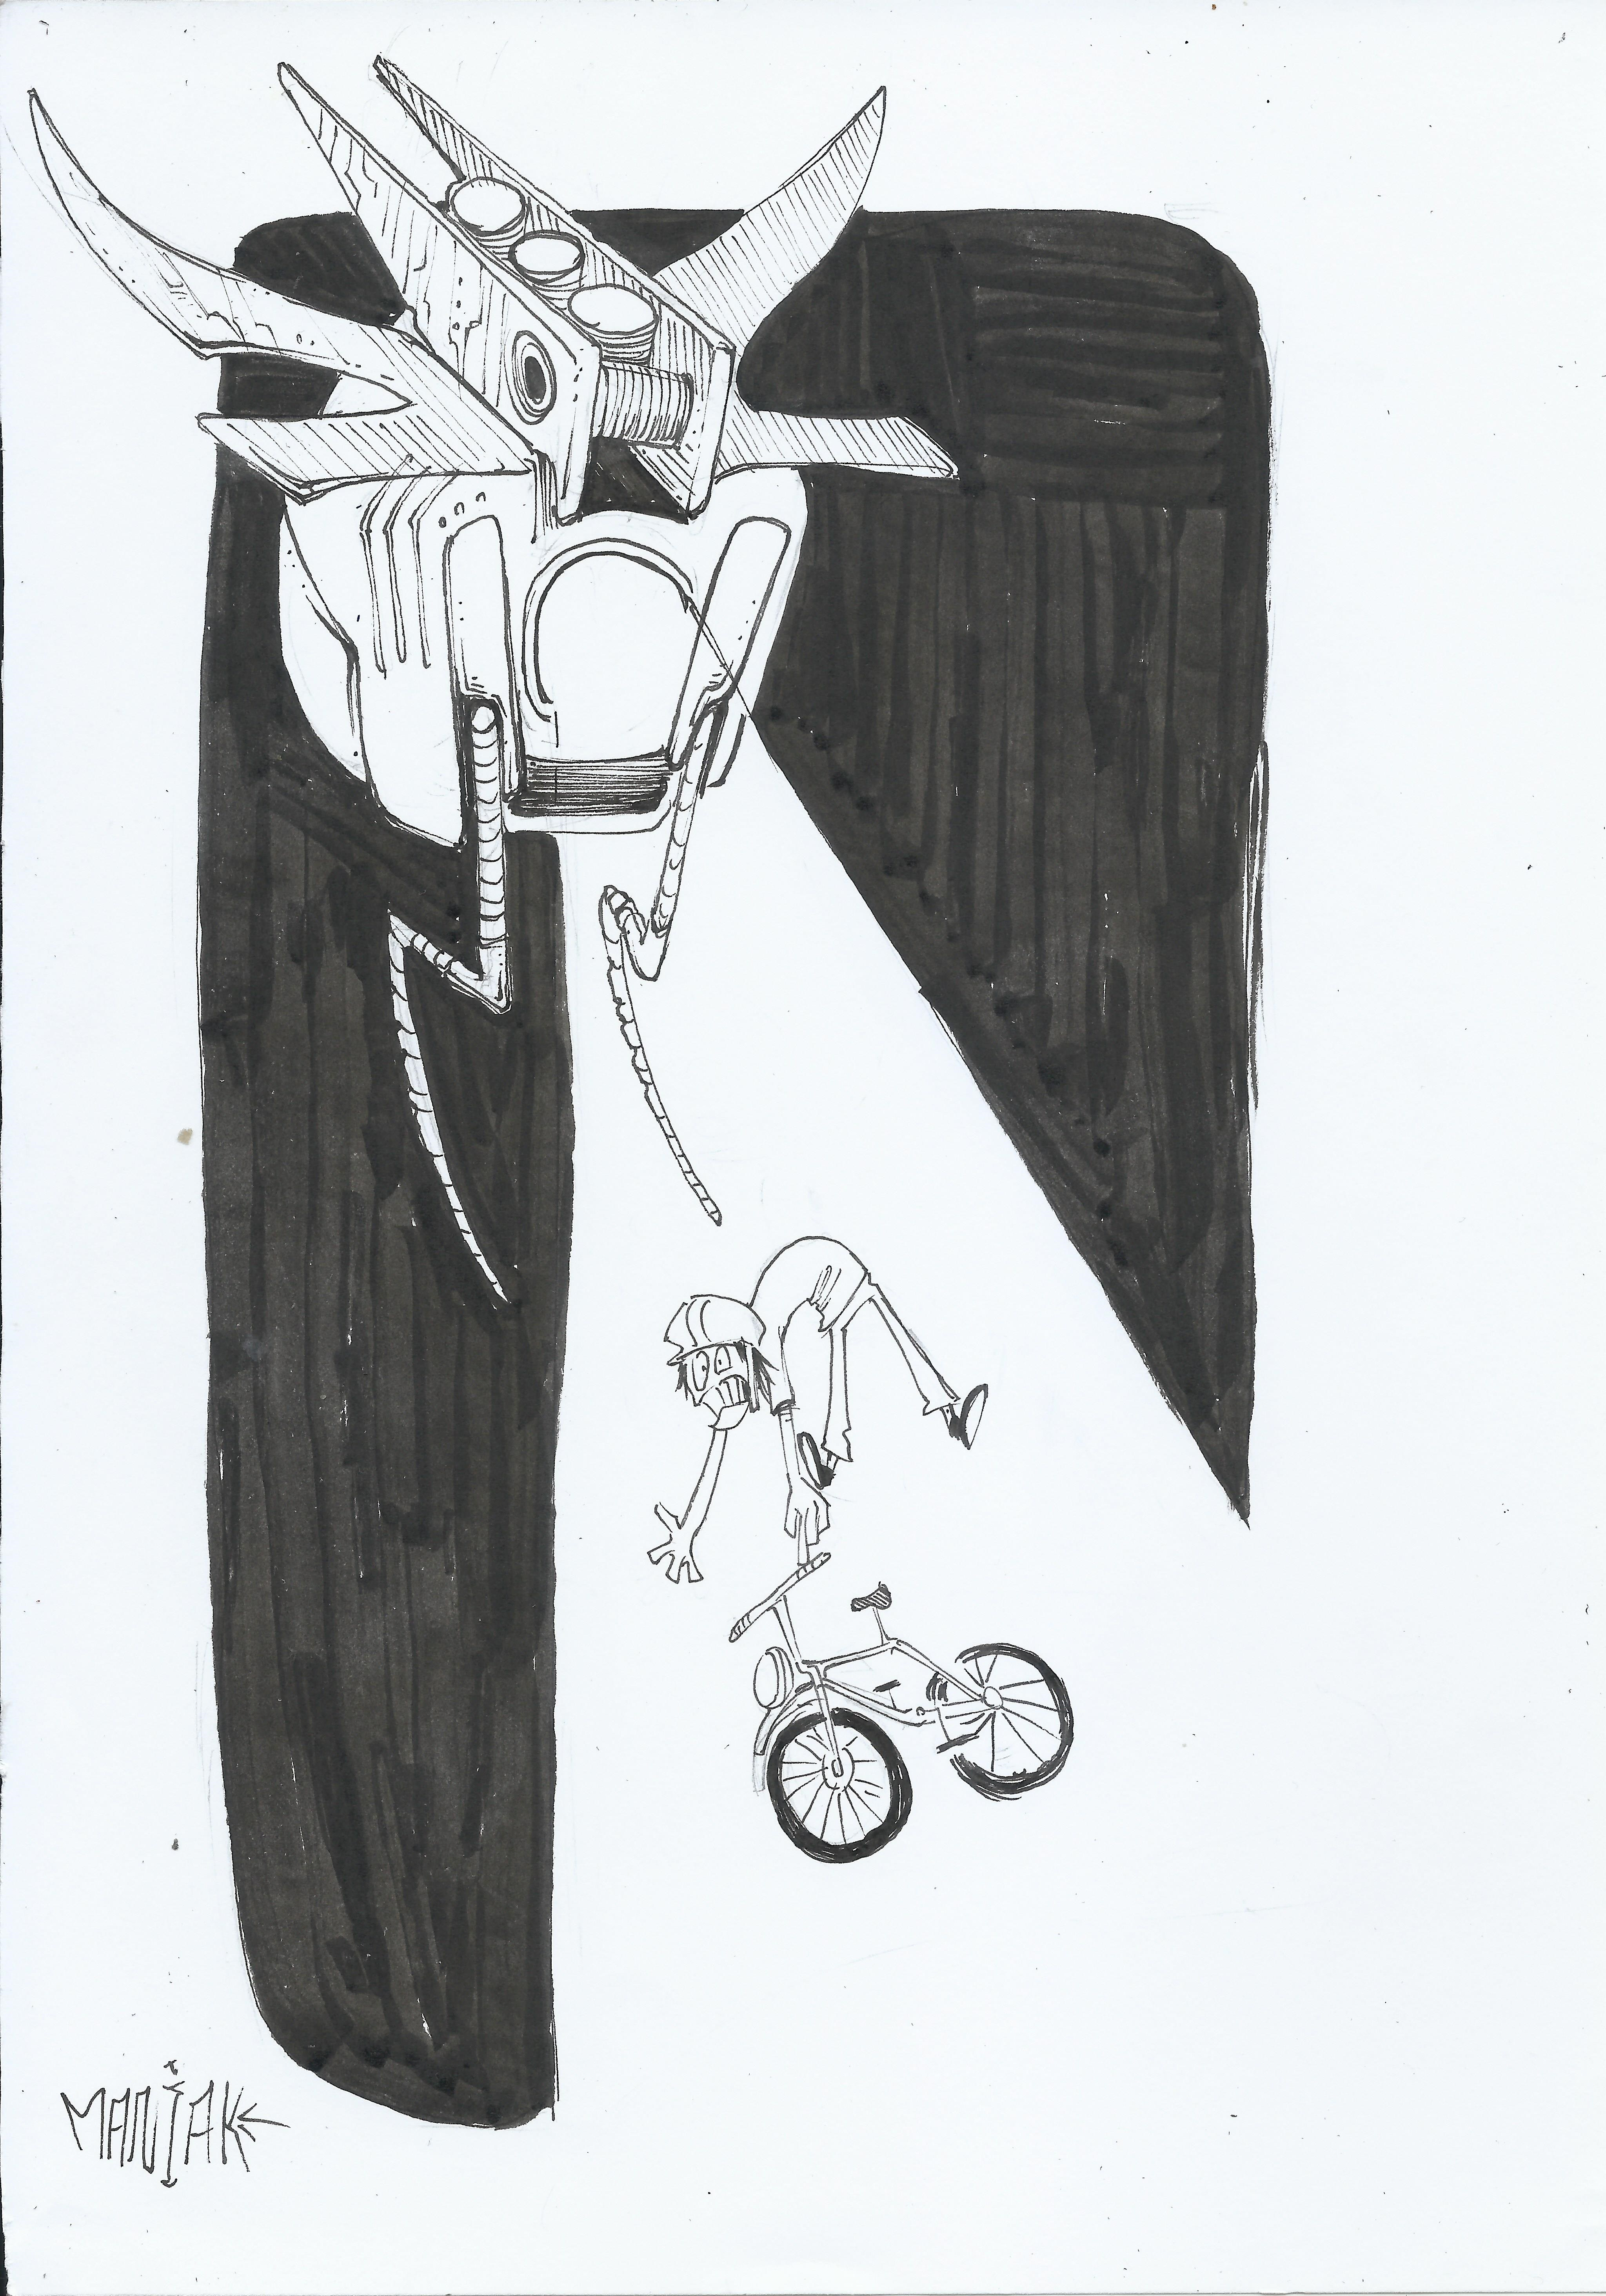 DAY 28 ''RIDE''